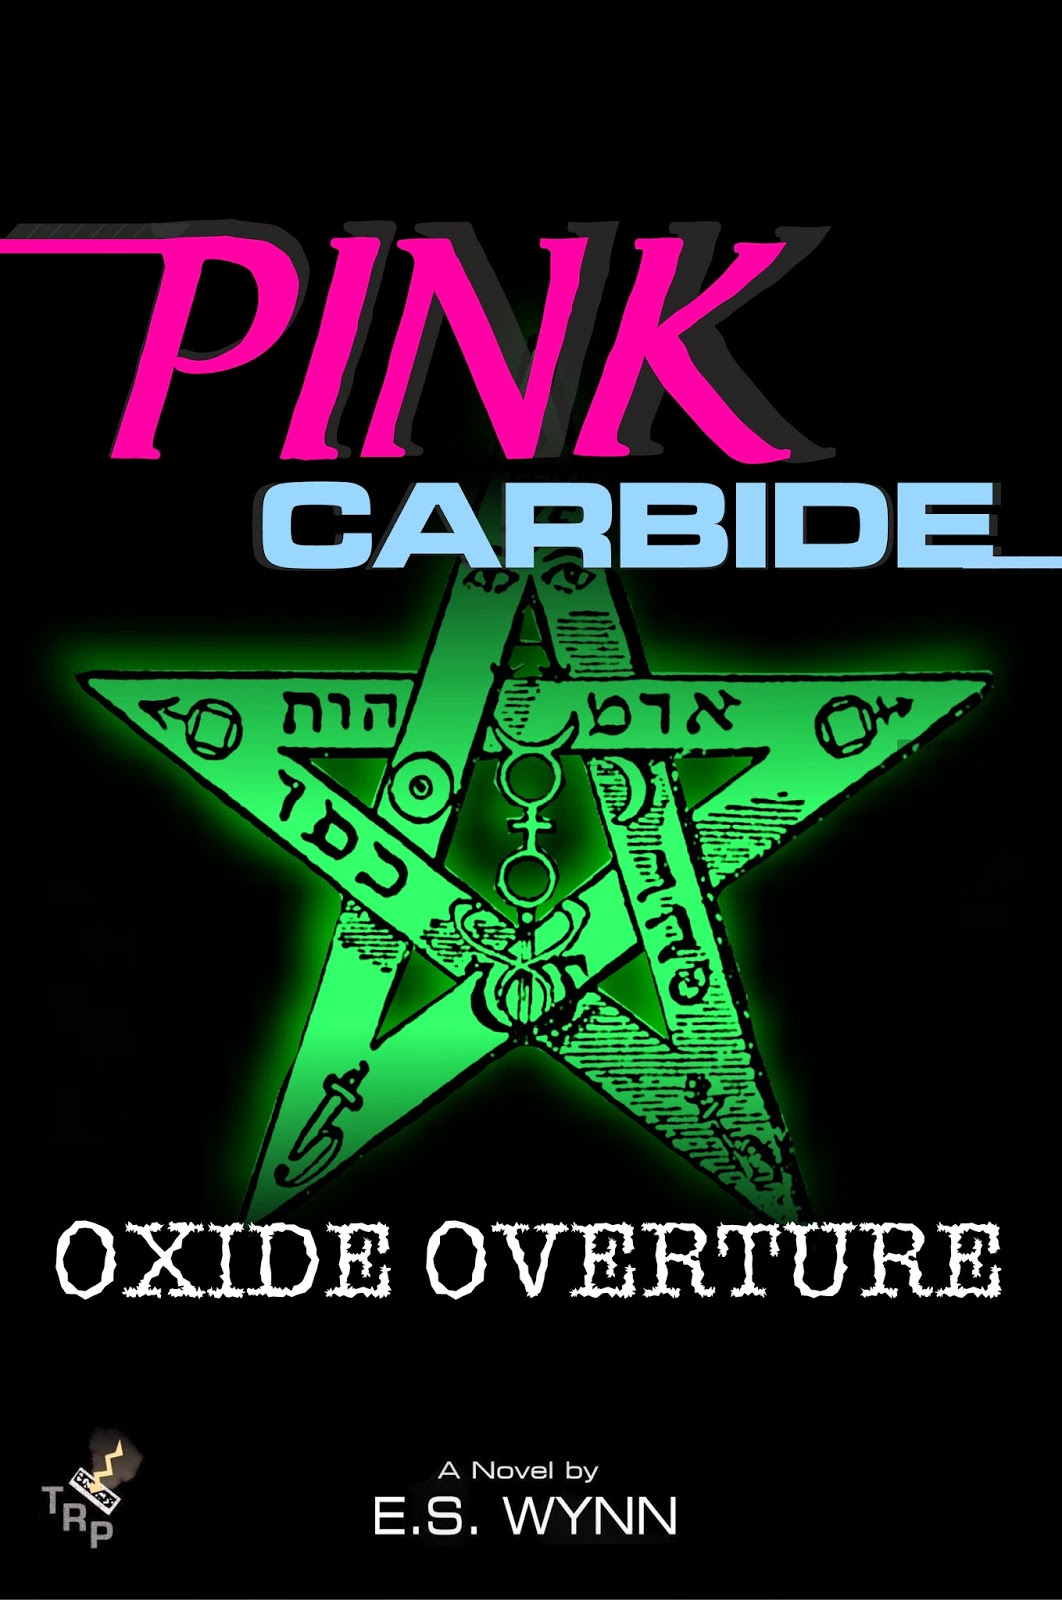 Fifth book in the Pink Carbide series